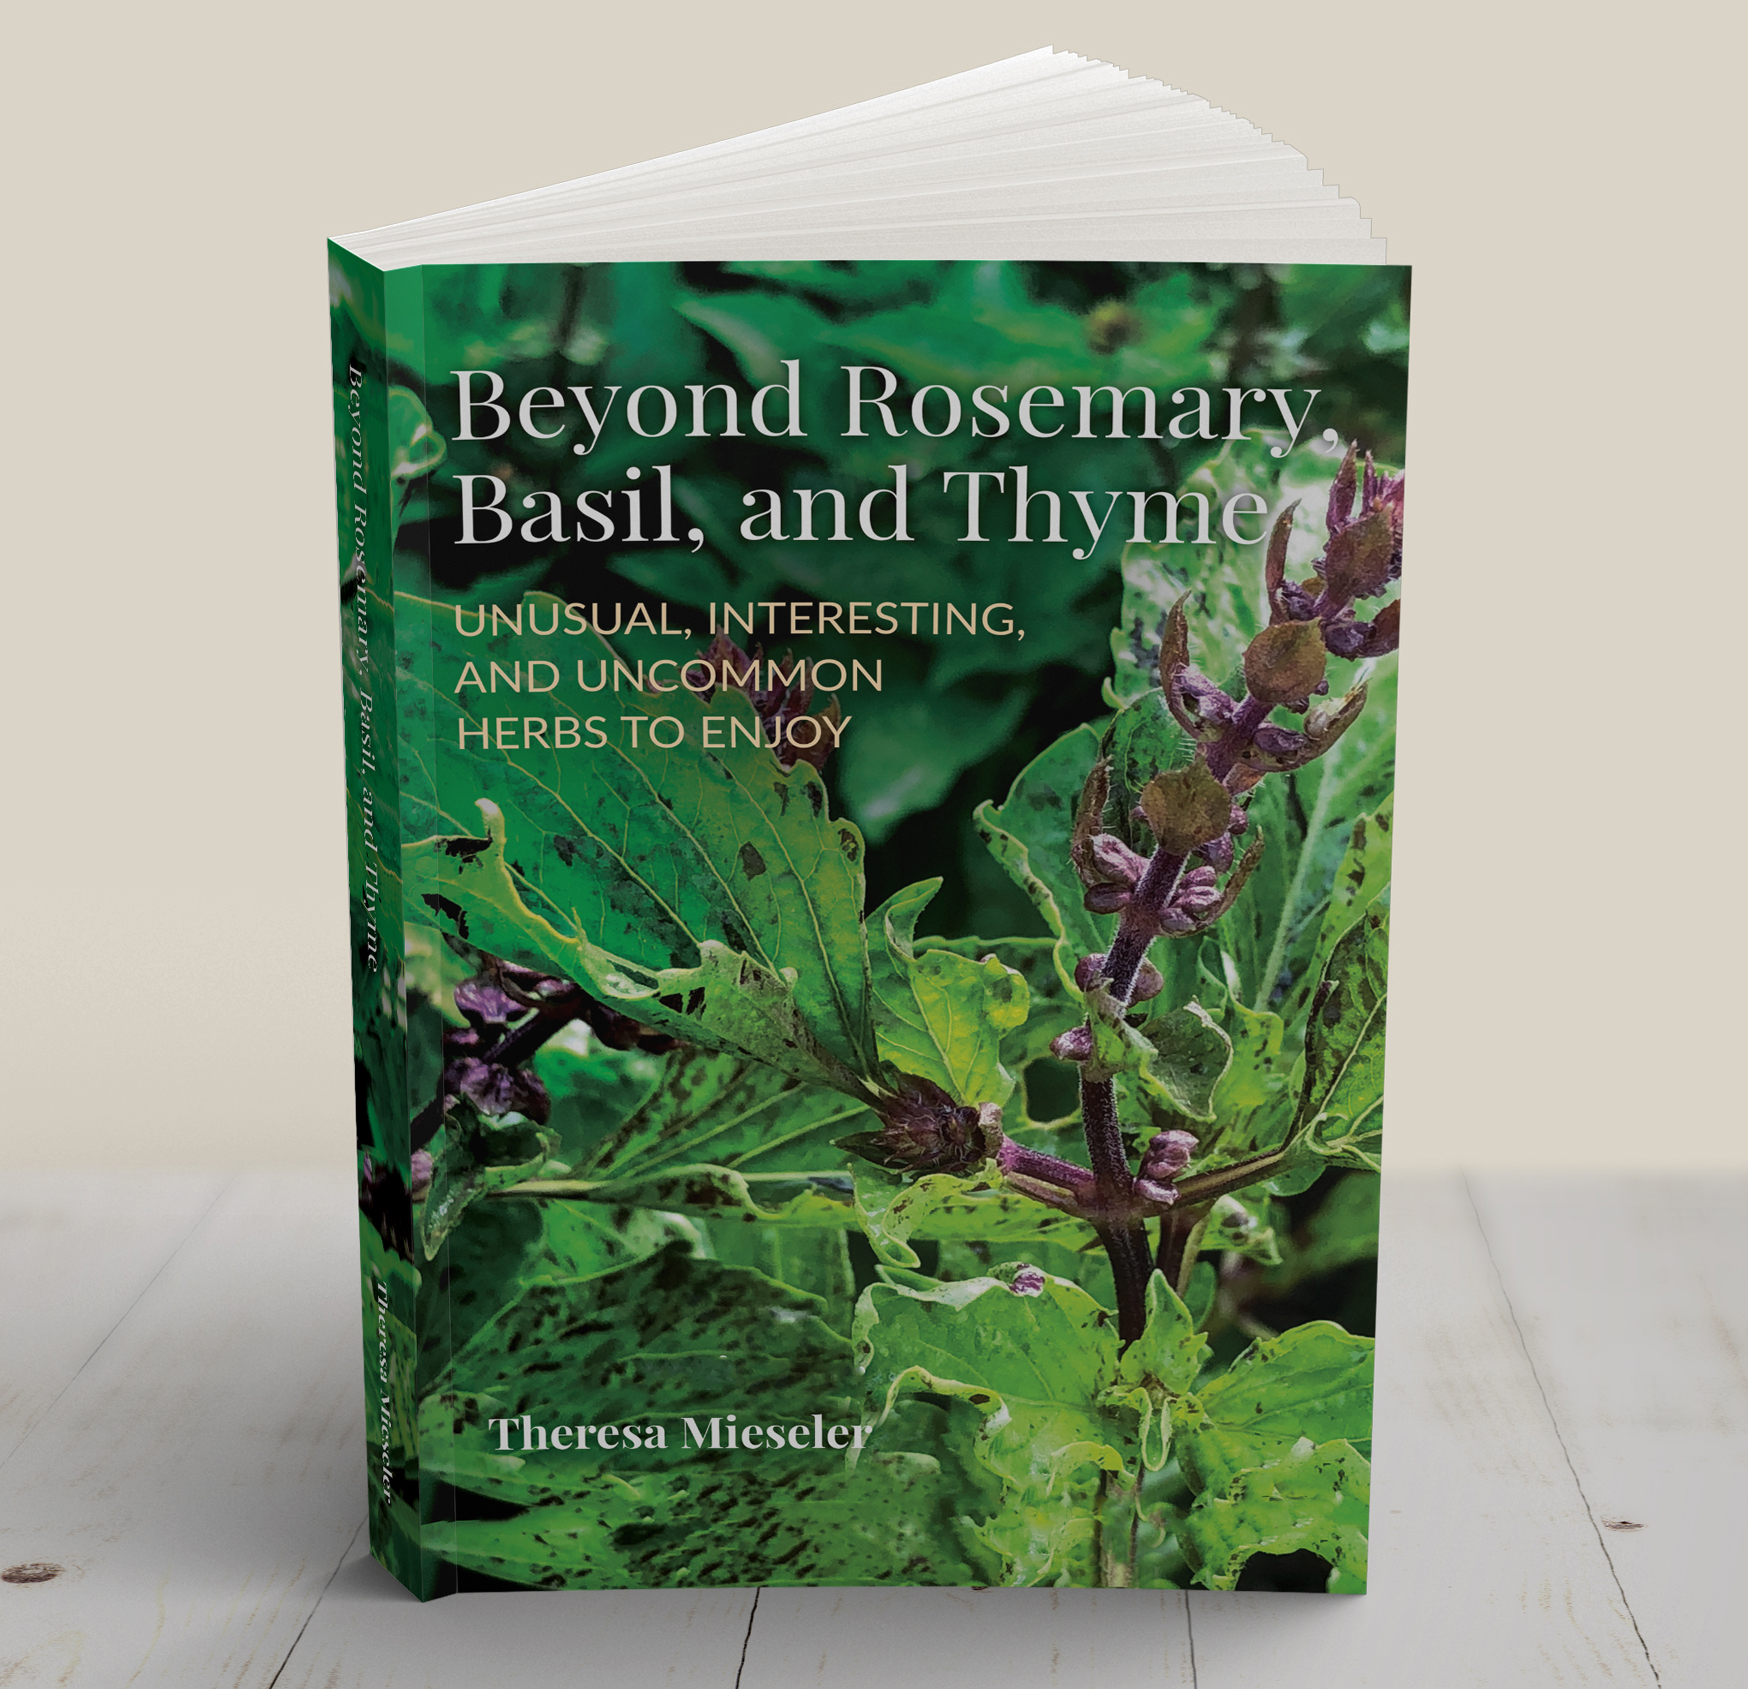 Beyond Rosemary, Basil, and Thyme - Shady Acres Herb Farm co-founder Theresa Mieseler's new book is filled with practical advice and useful tips on growing unique herbs. Beyond Rosemary, Basil, and Thyme includes a vast selection of useful information, tasty recipes, and interesting facts about herbs and how to use them.